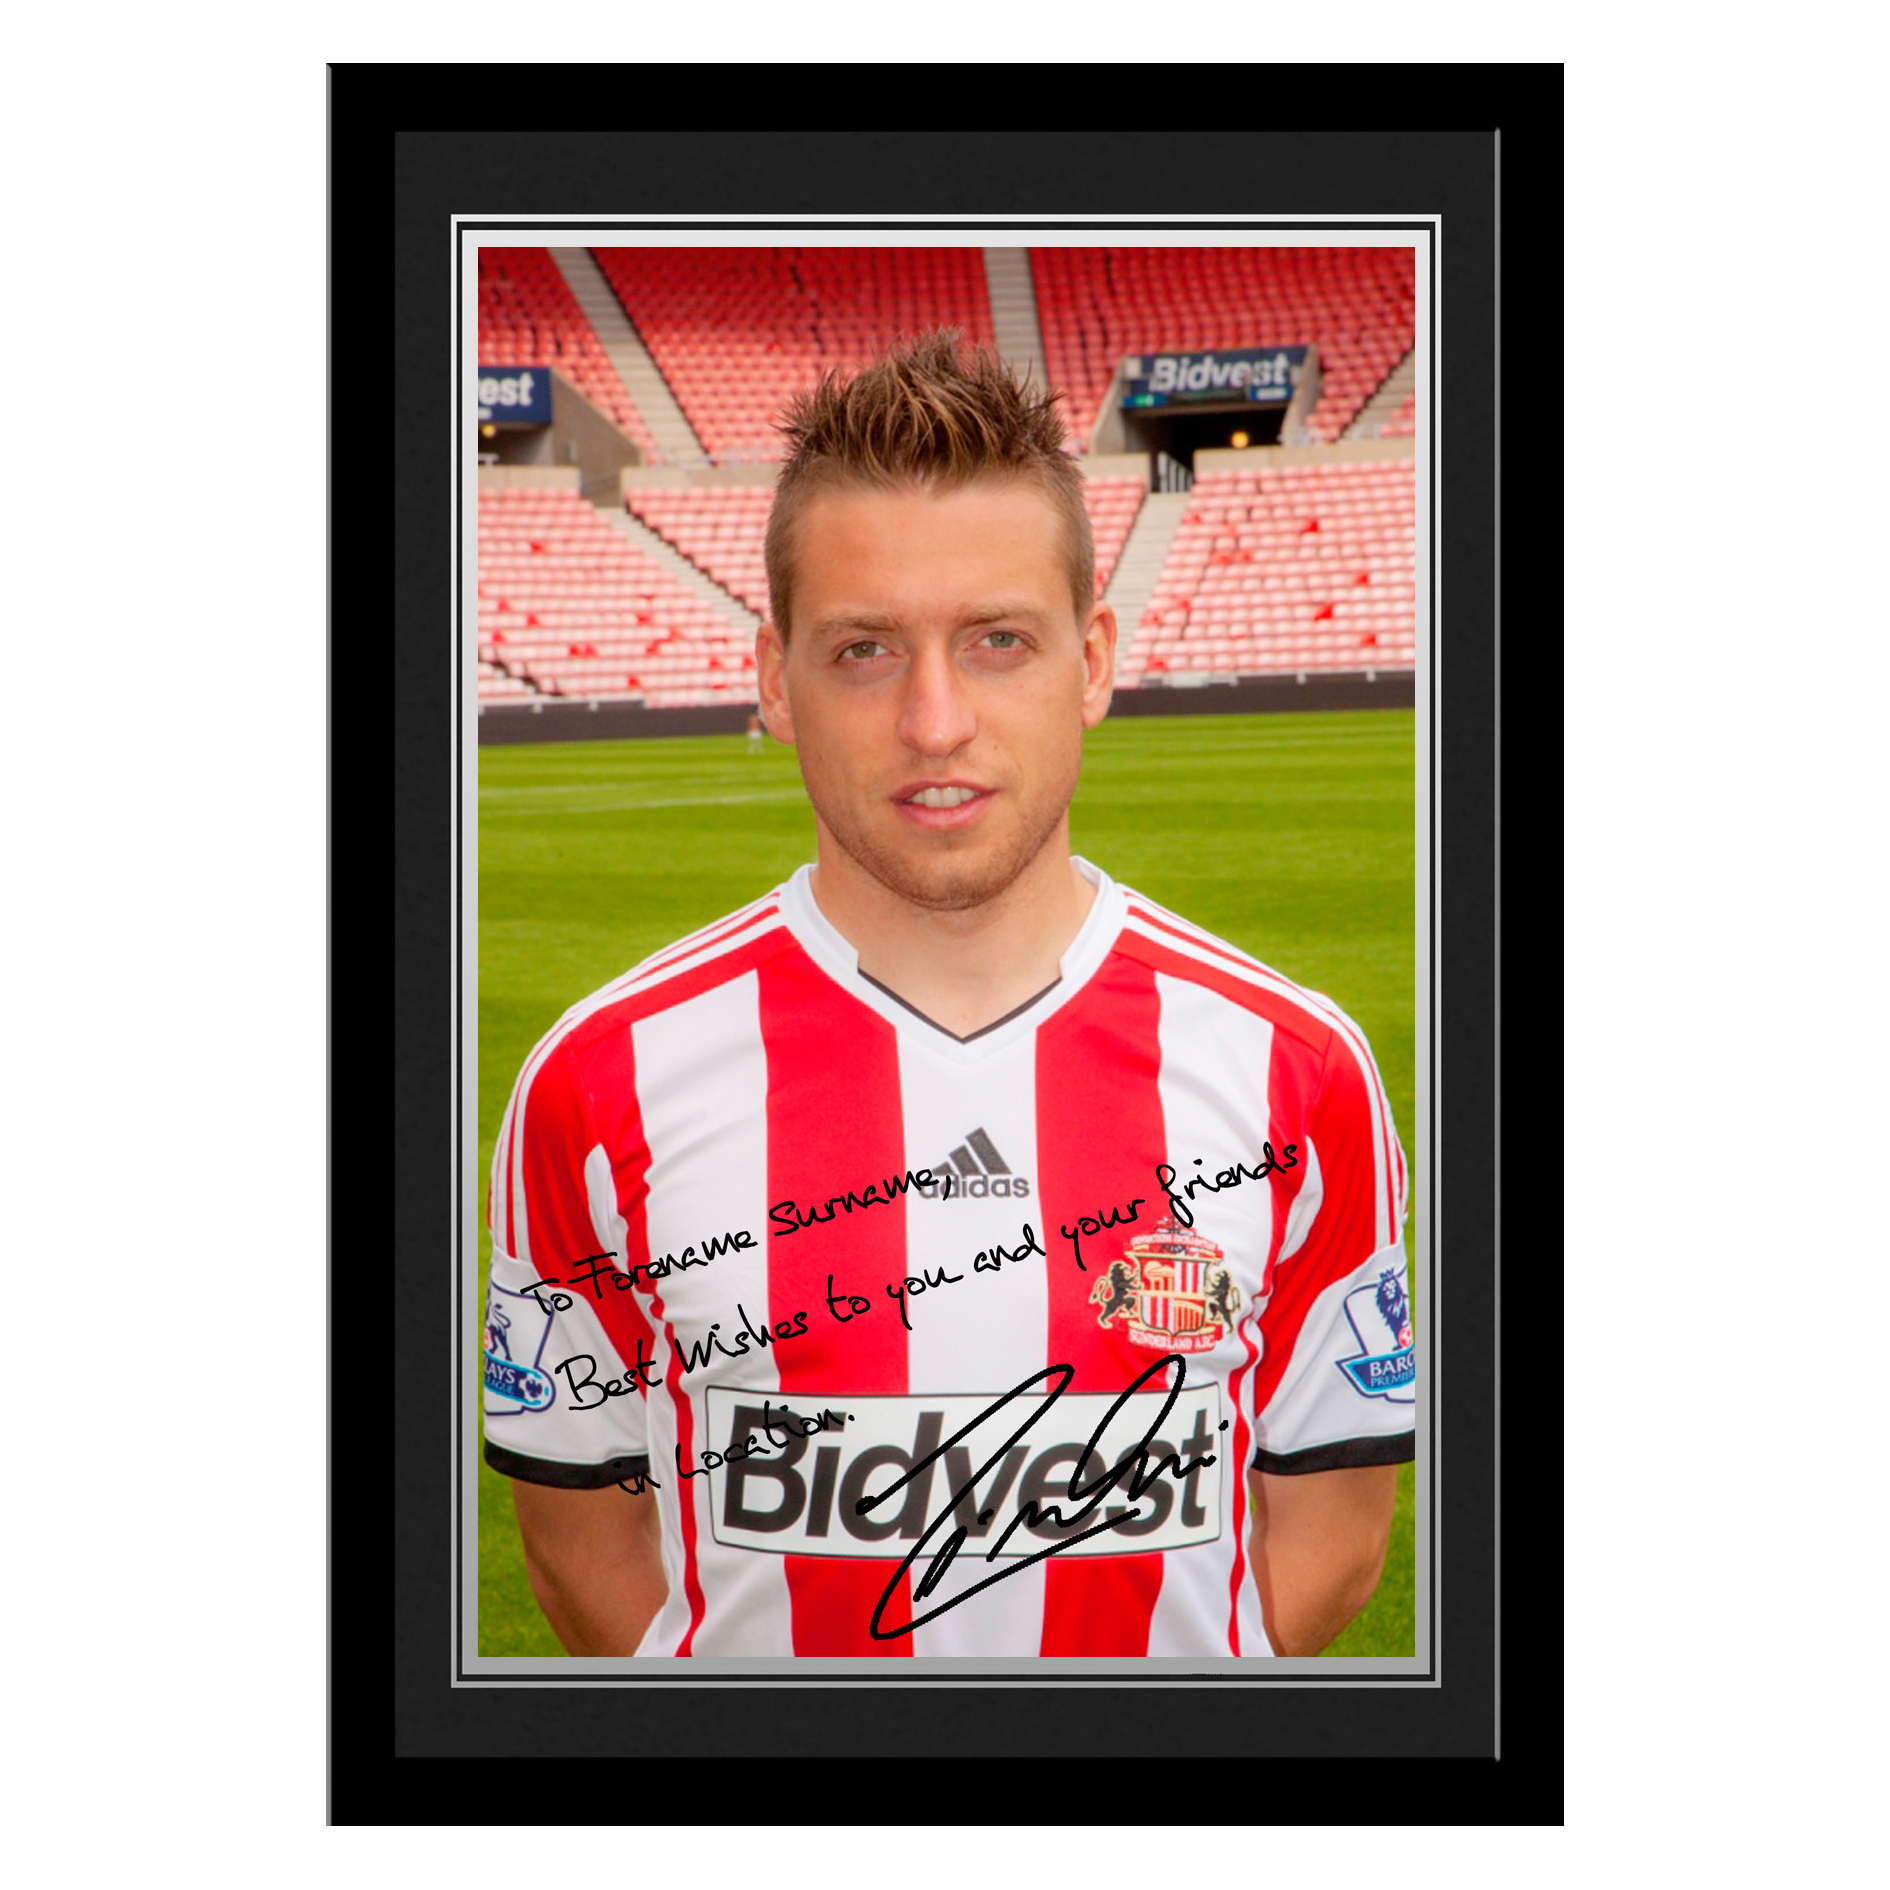 Sunderland Personalised Signature Photo Framed - Giaccherini